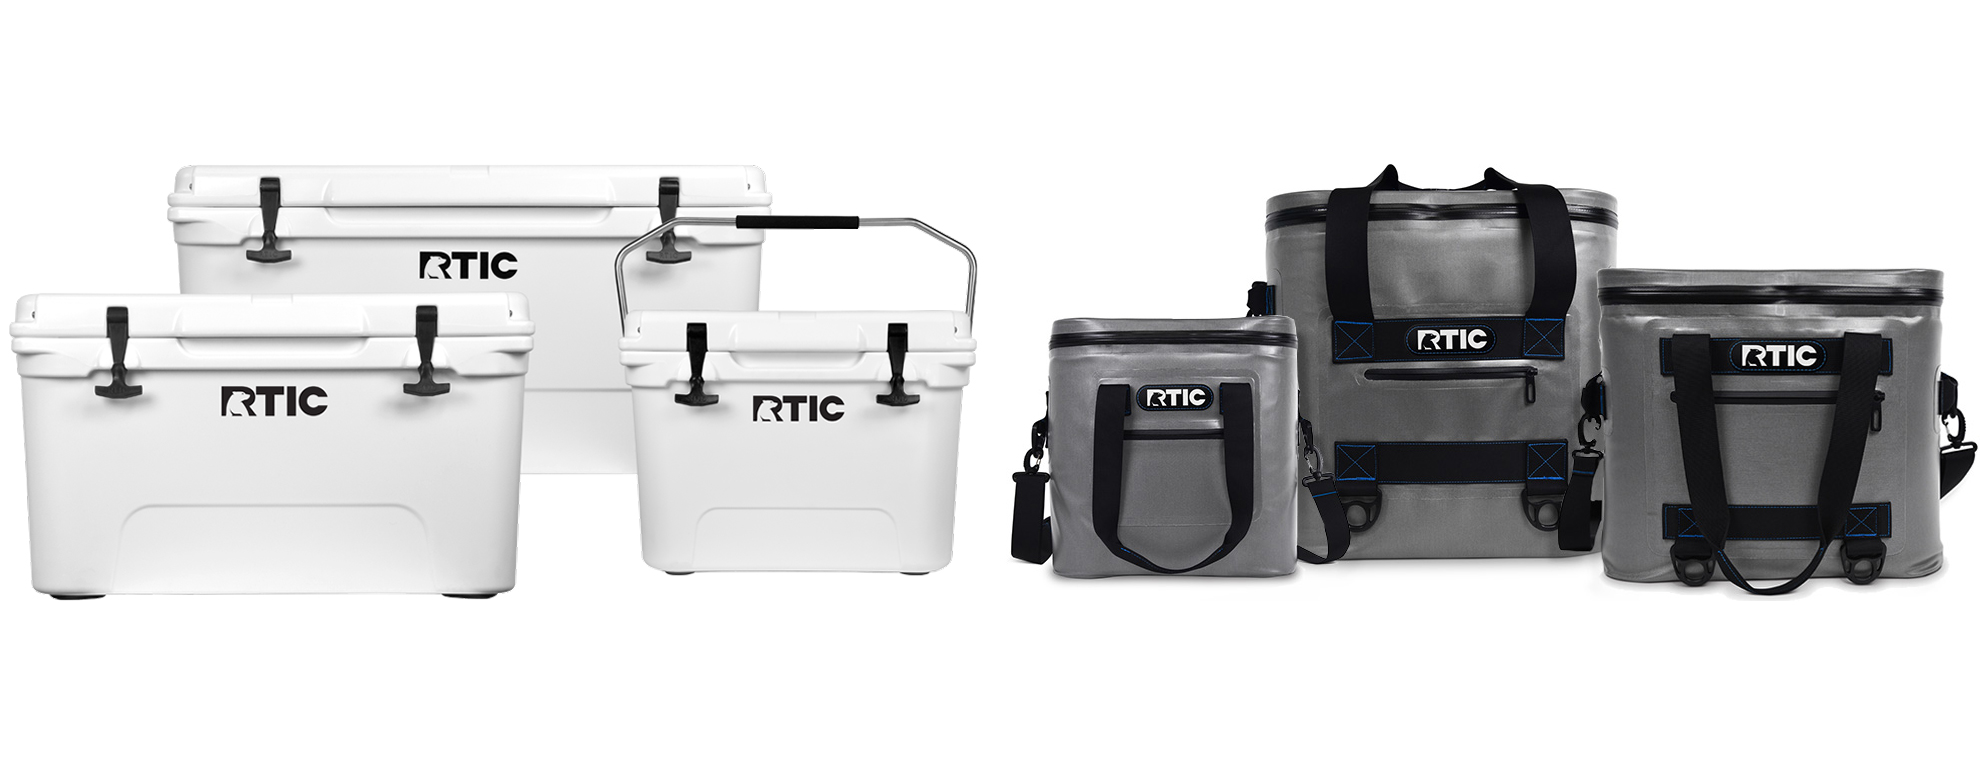 RTIC Coolers: A Rugged Alternative to Yeti?